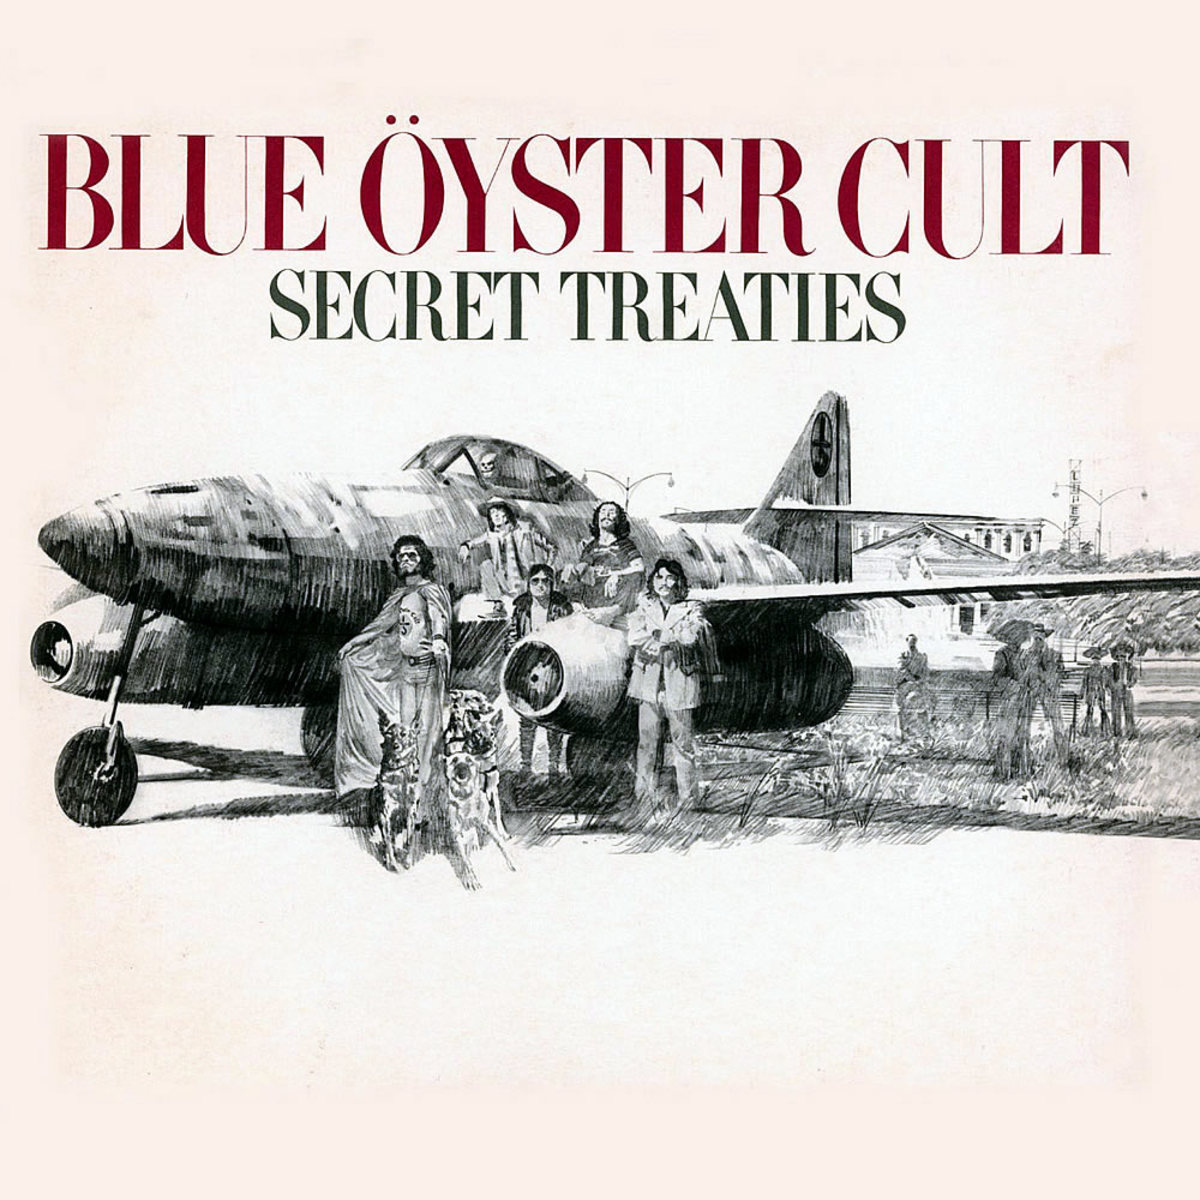 Secret Treaties (1974). Copyright of Columbia Records.